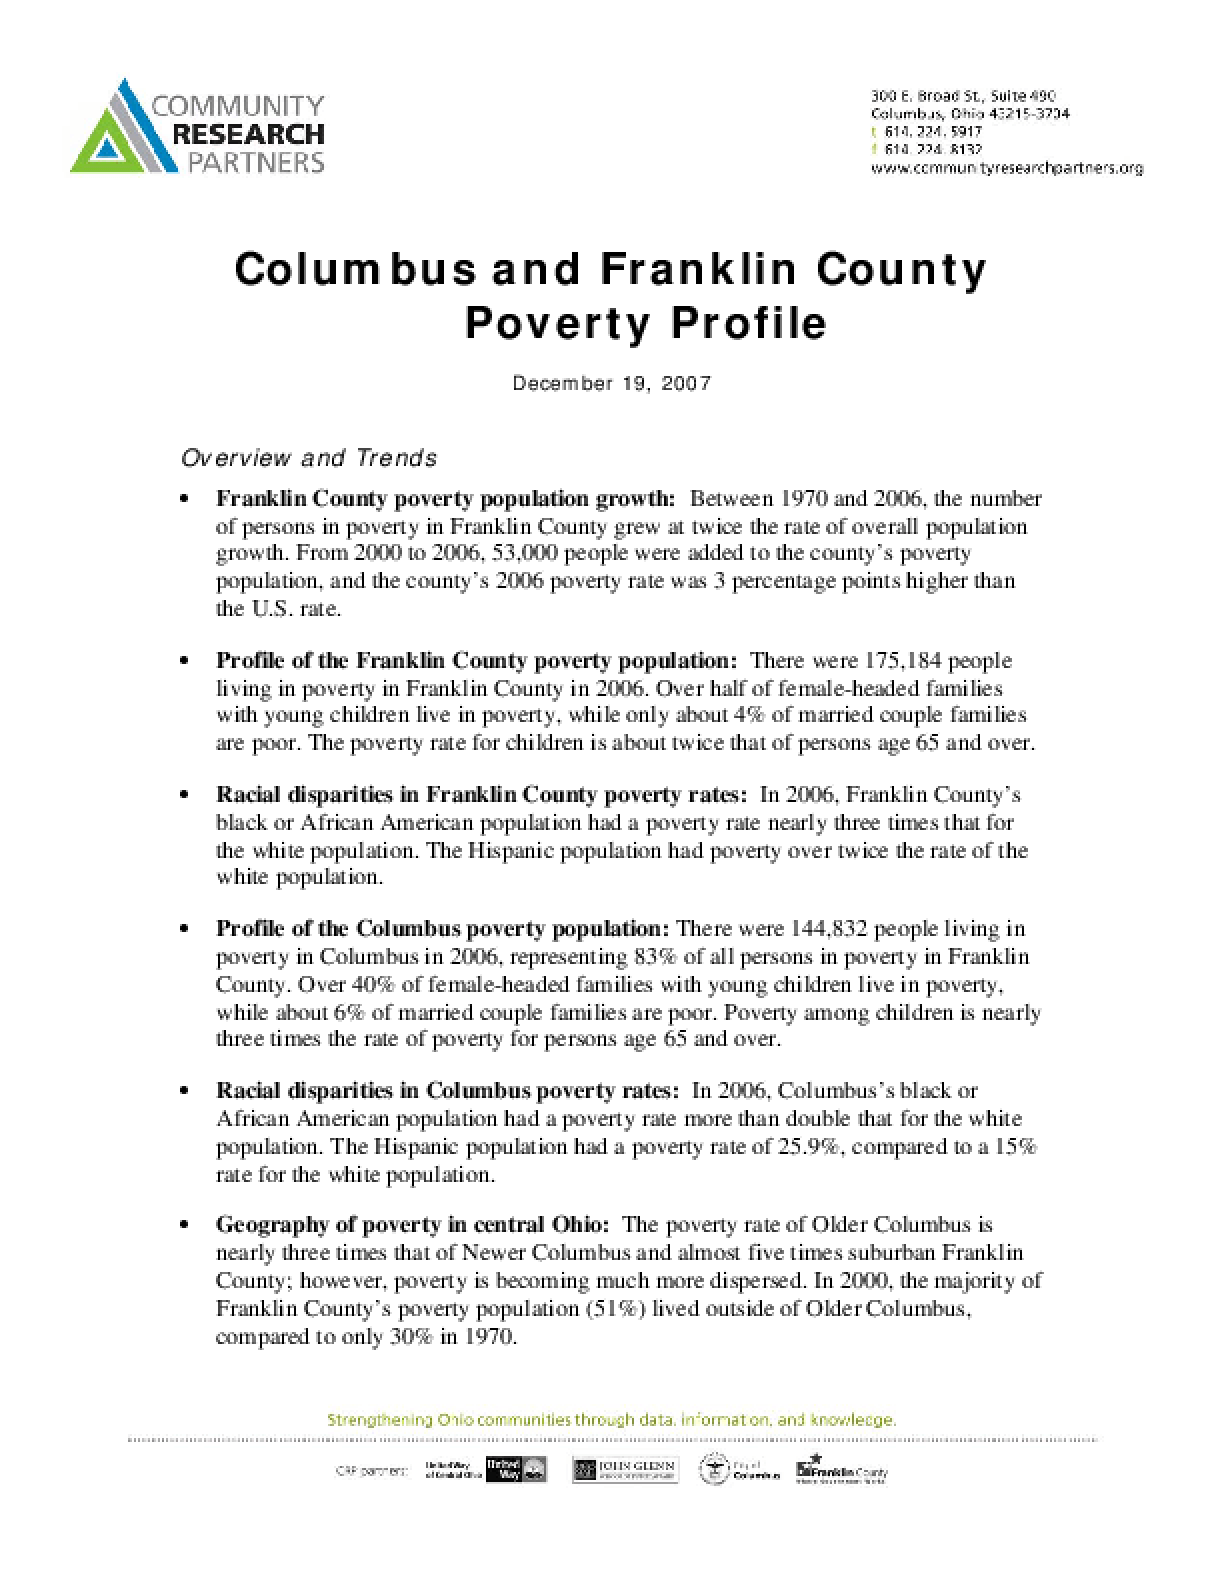 Columbus and Franklin County Poverty Profile